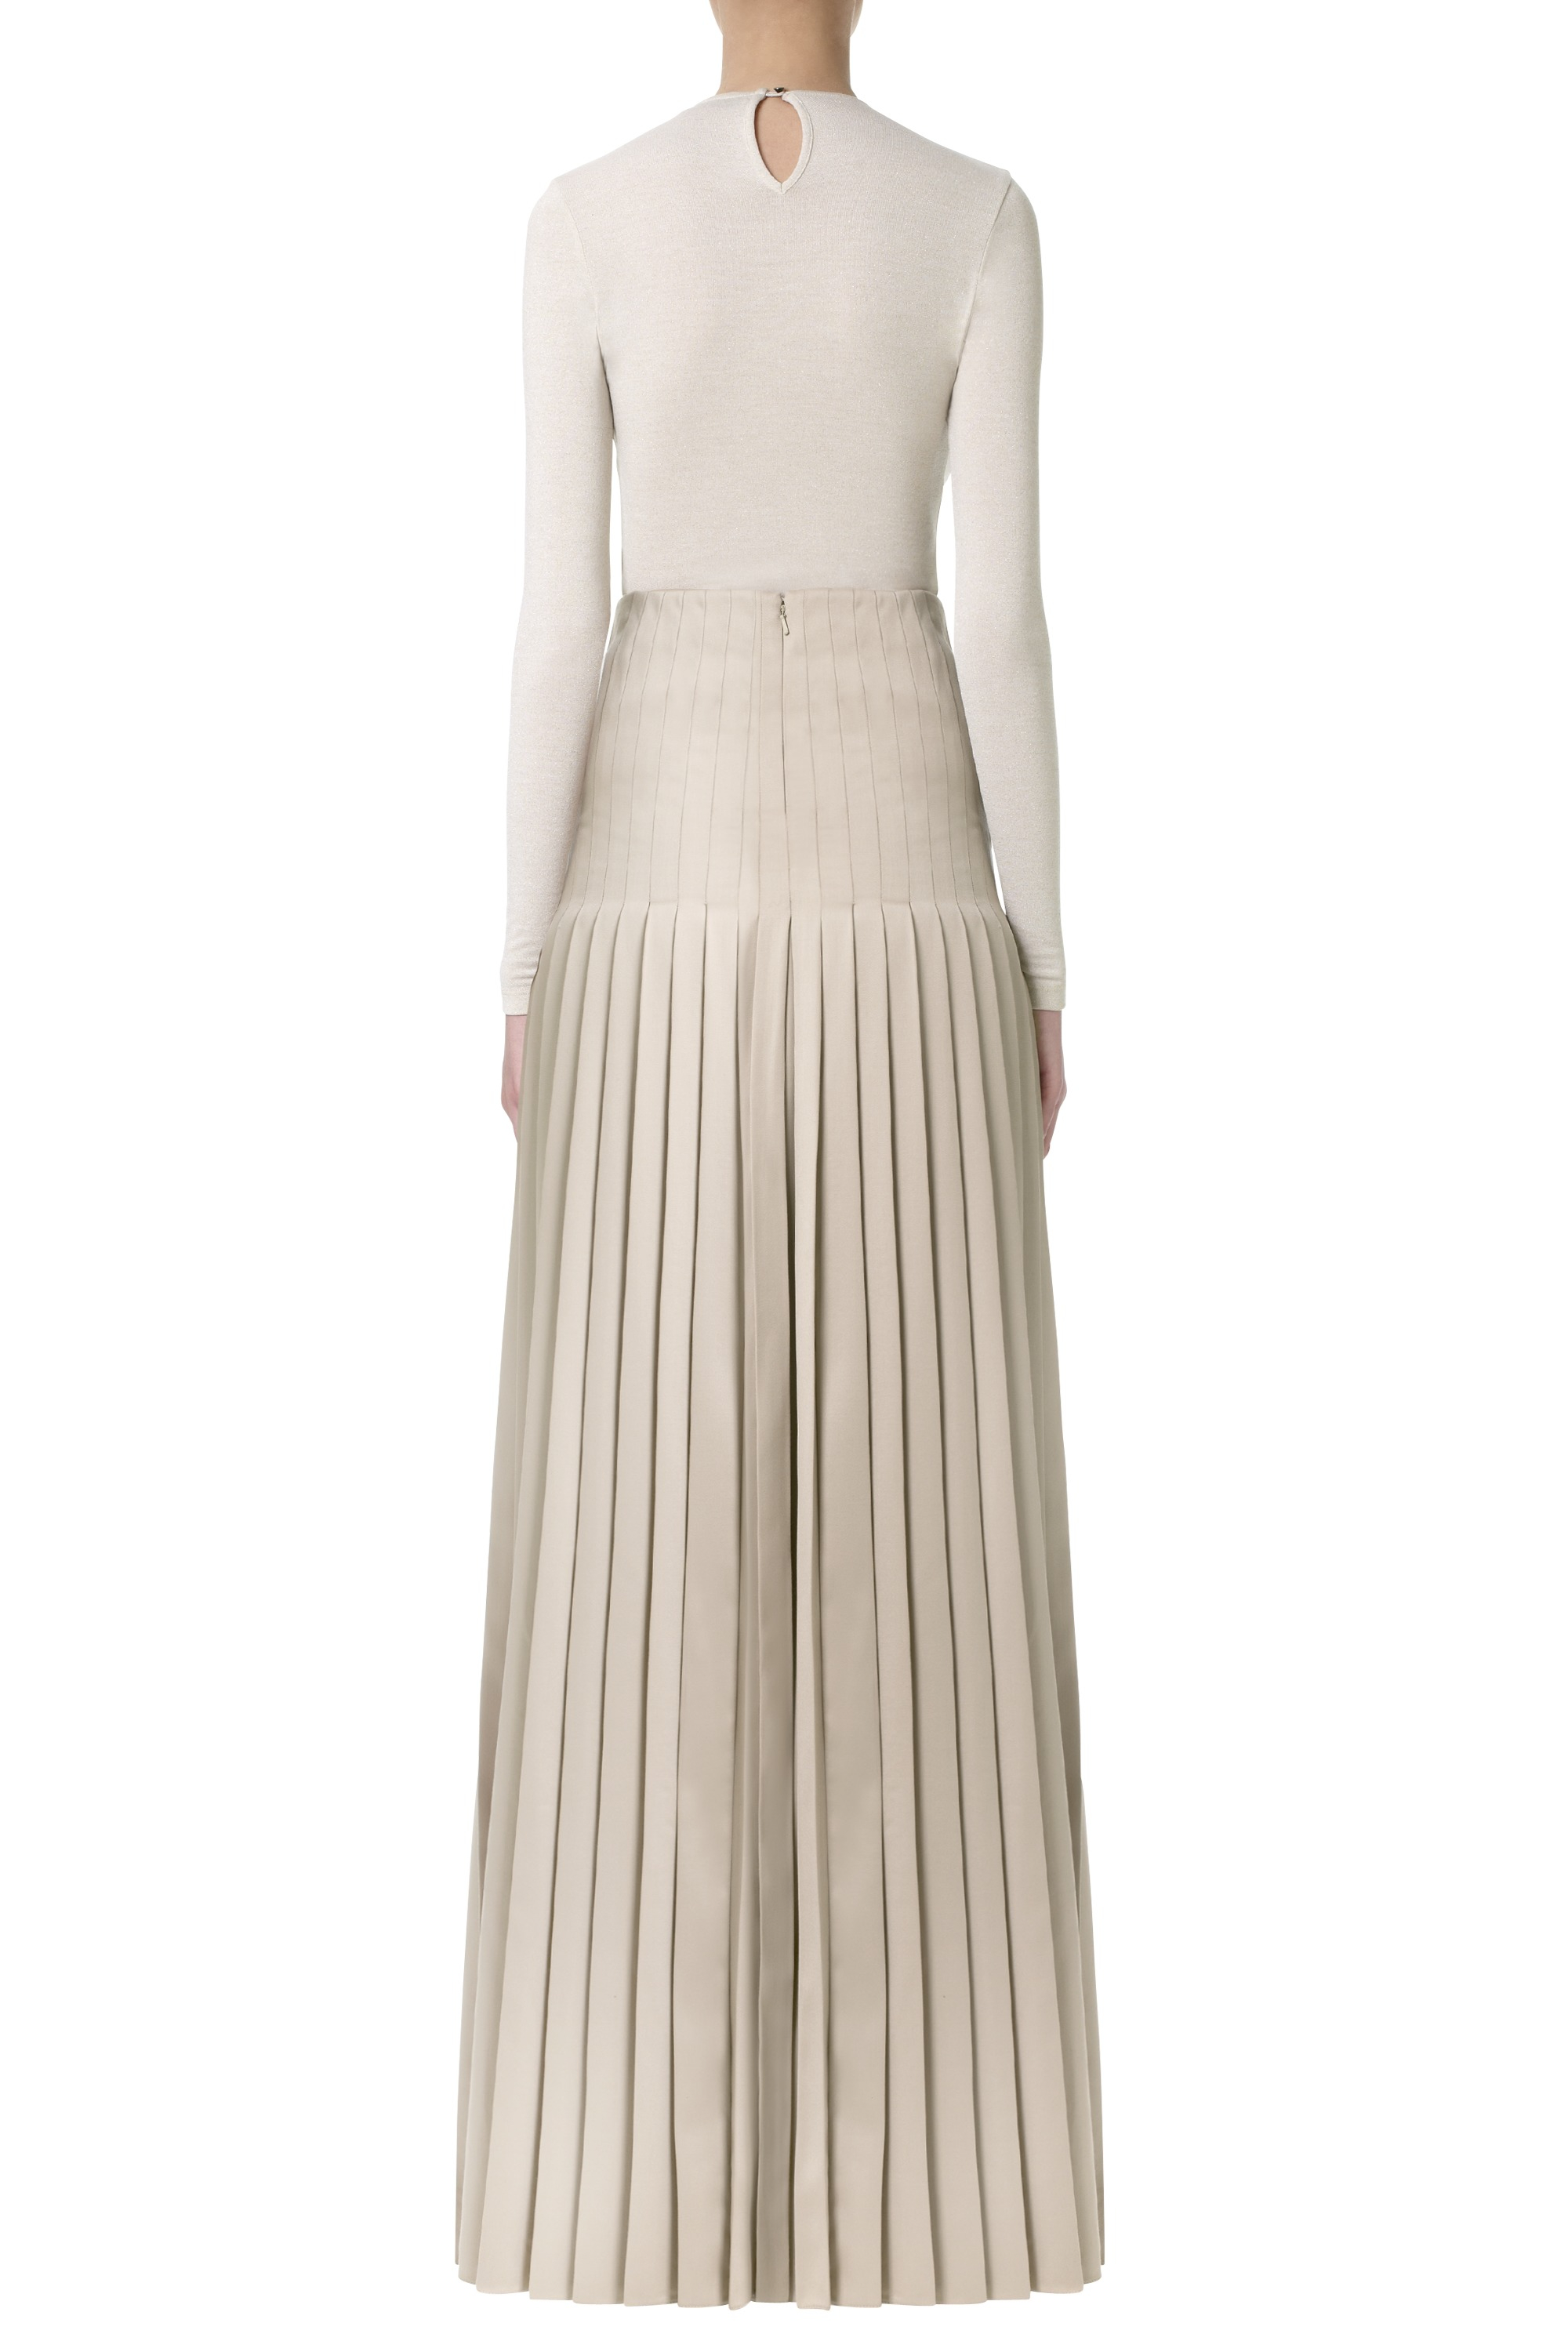 Mary katrantzou Riva Maxi Pleated Skirt Embroidered in Black | Lyst